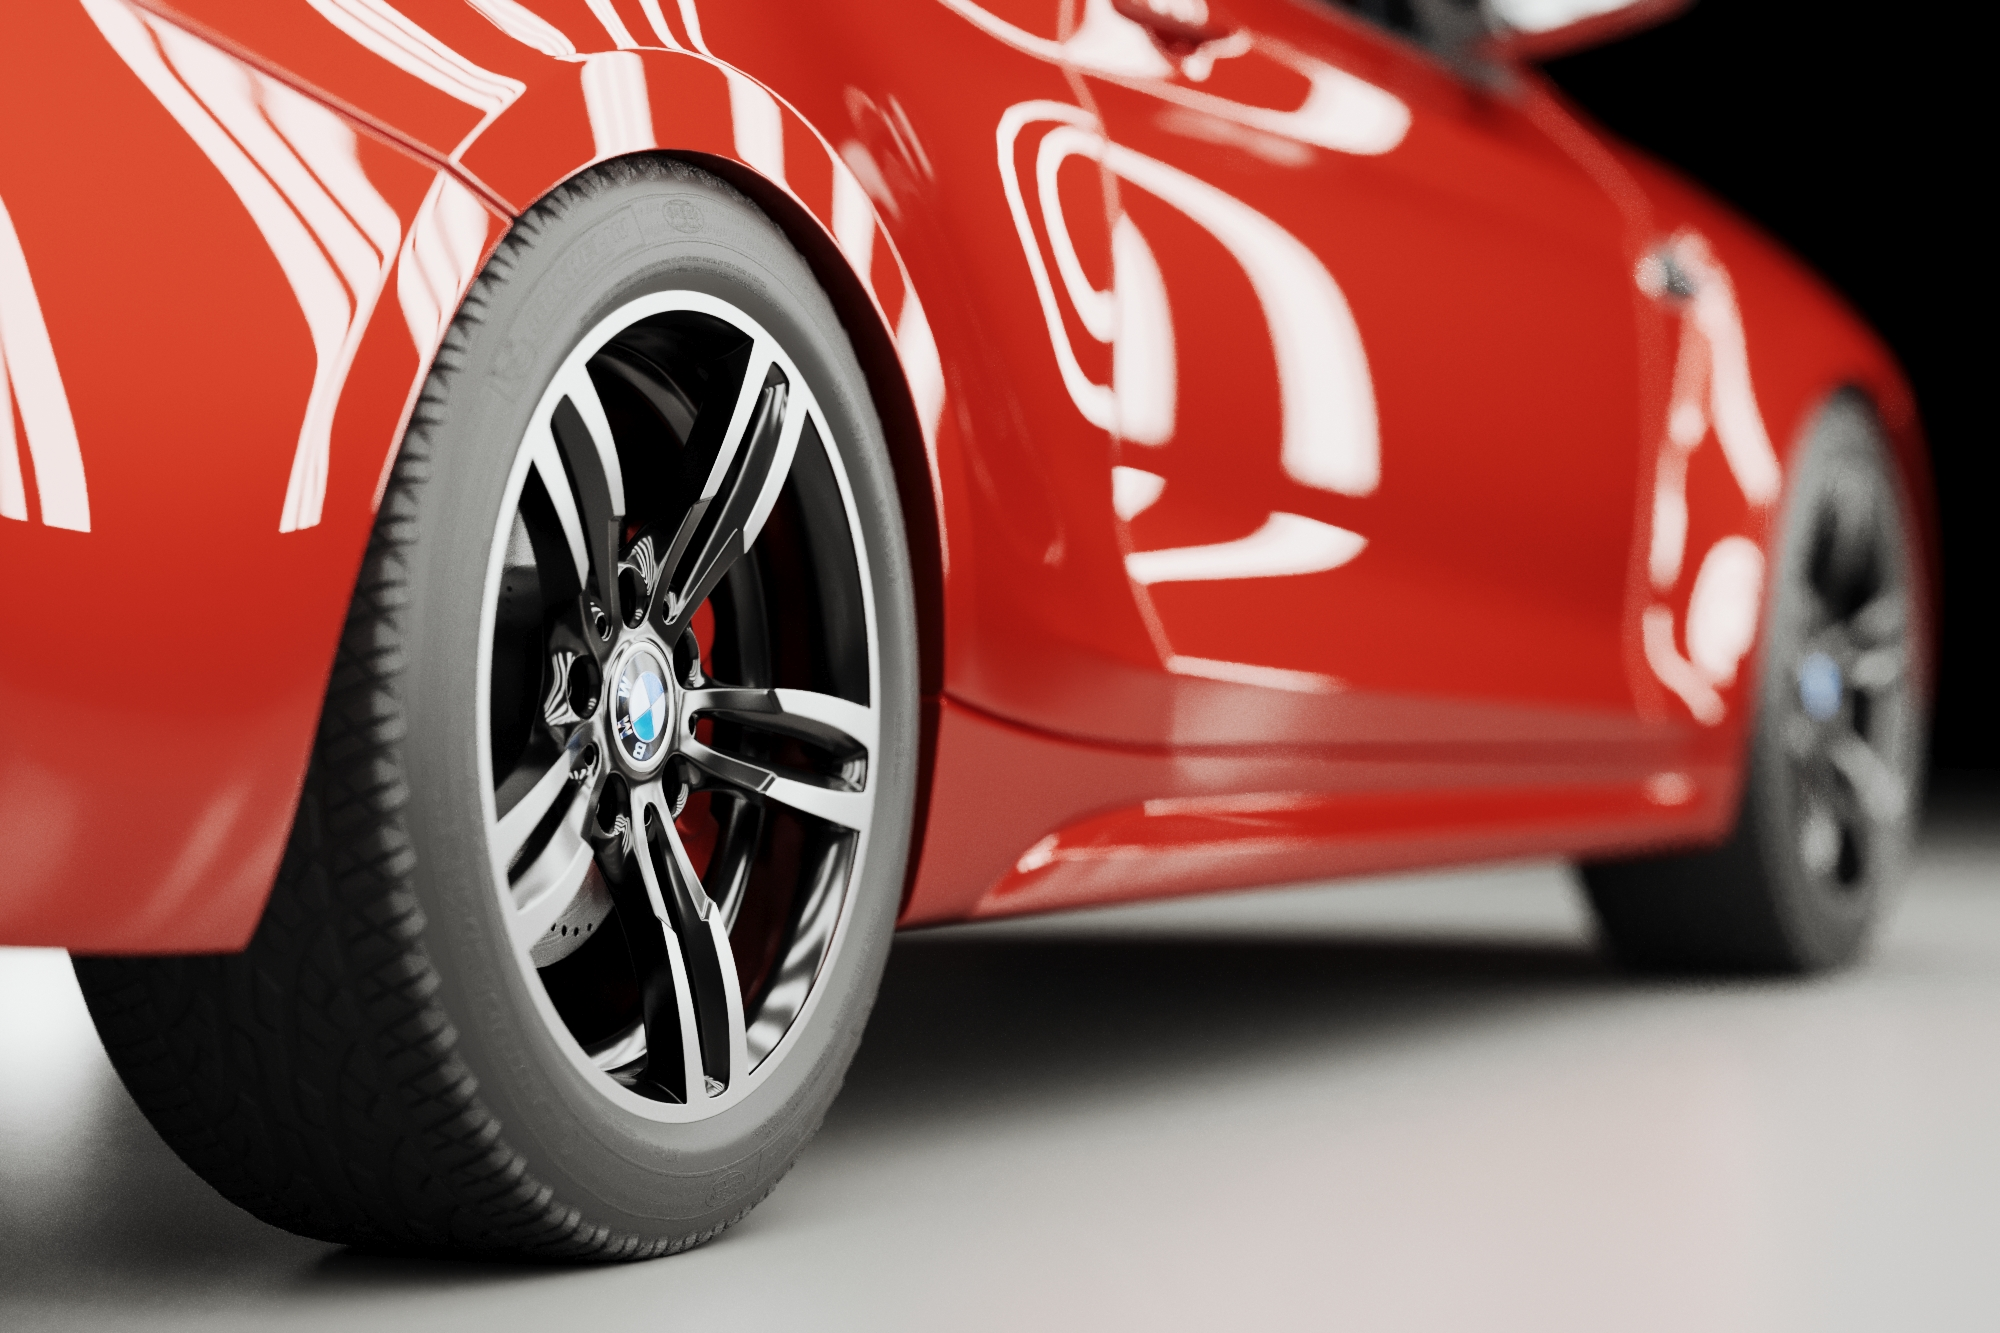 Red BMW M2 wheel render in light tunnel with reflections